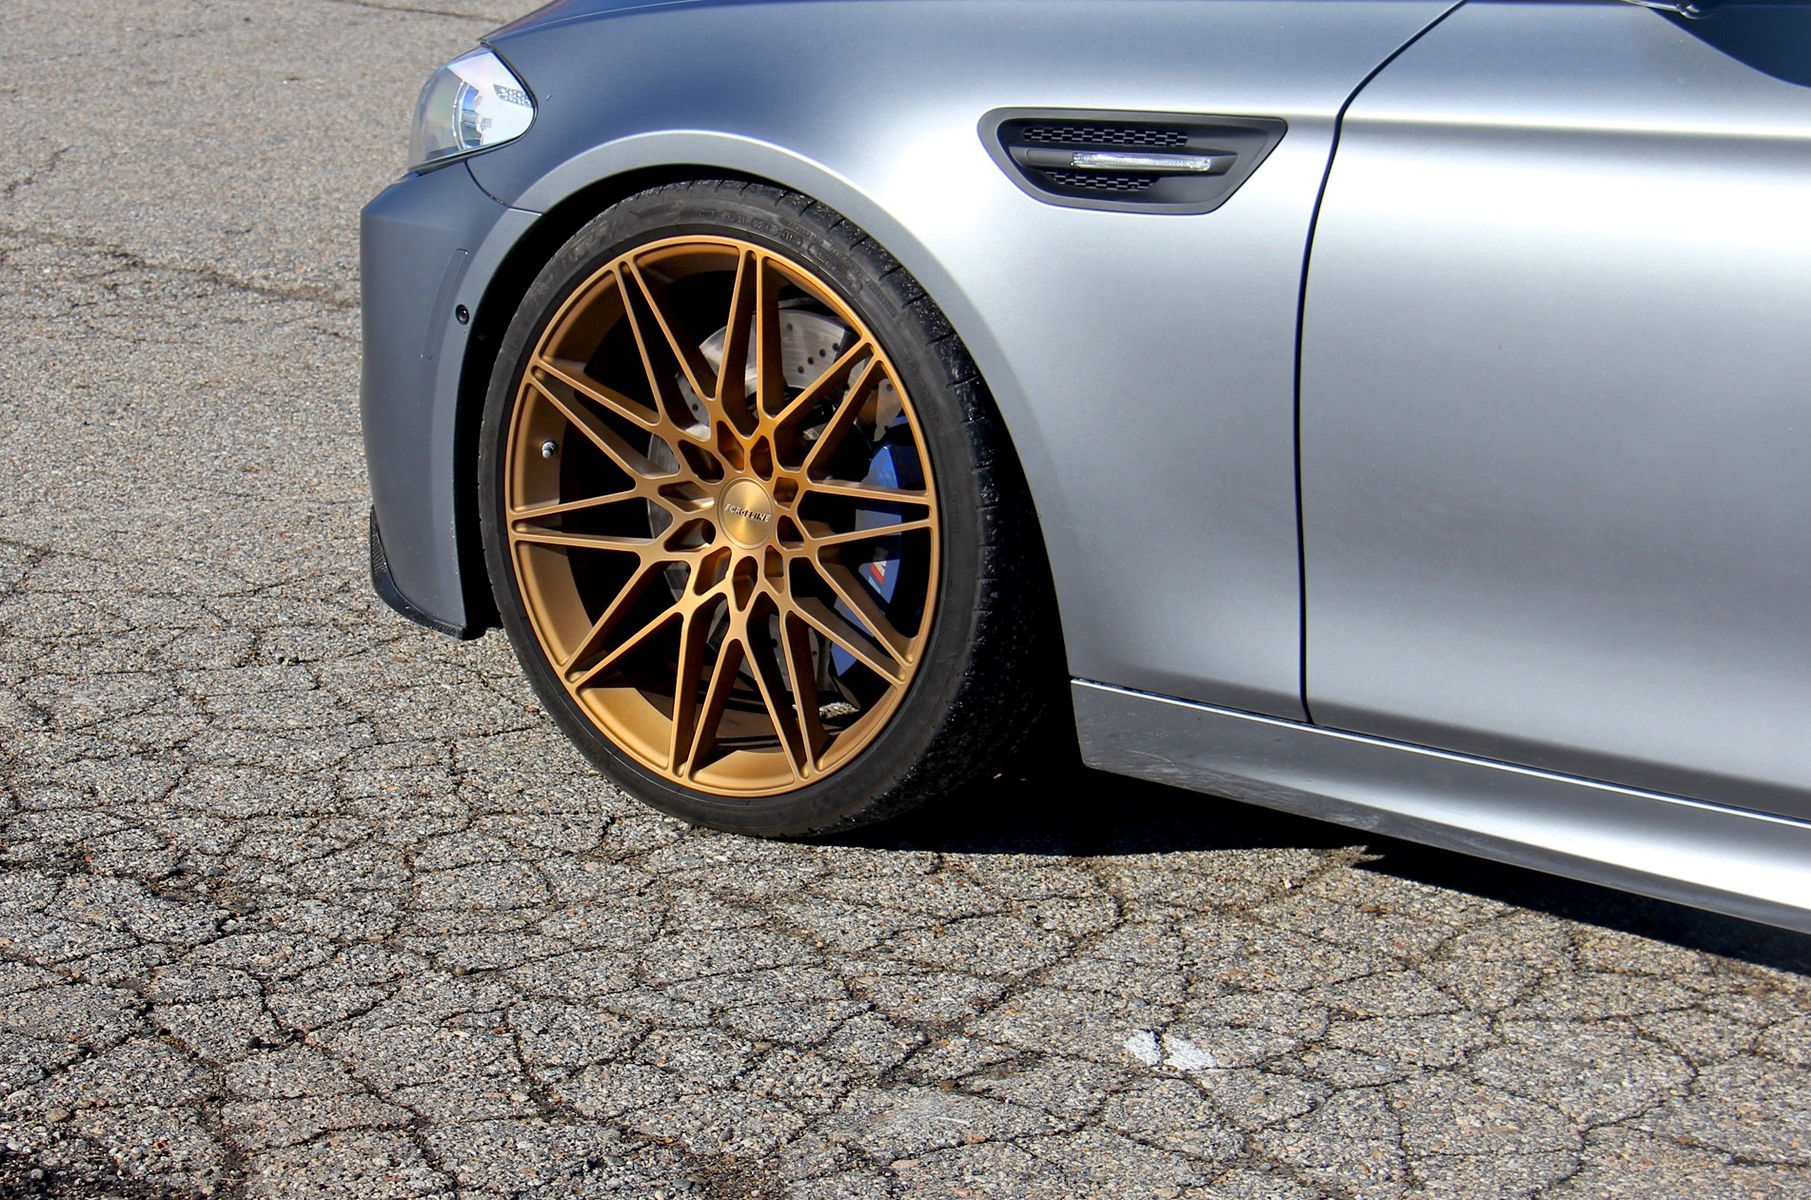 2015 BMW M5 | Turner Motorsport's Frozen Gray BMW F10 M5 on Forgeline One Piece Forged Monoblock MT1 Wheels